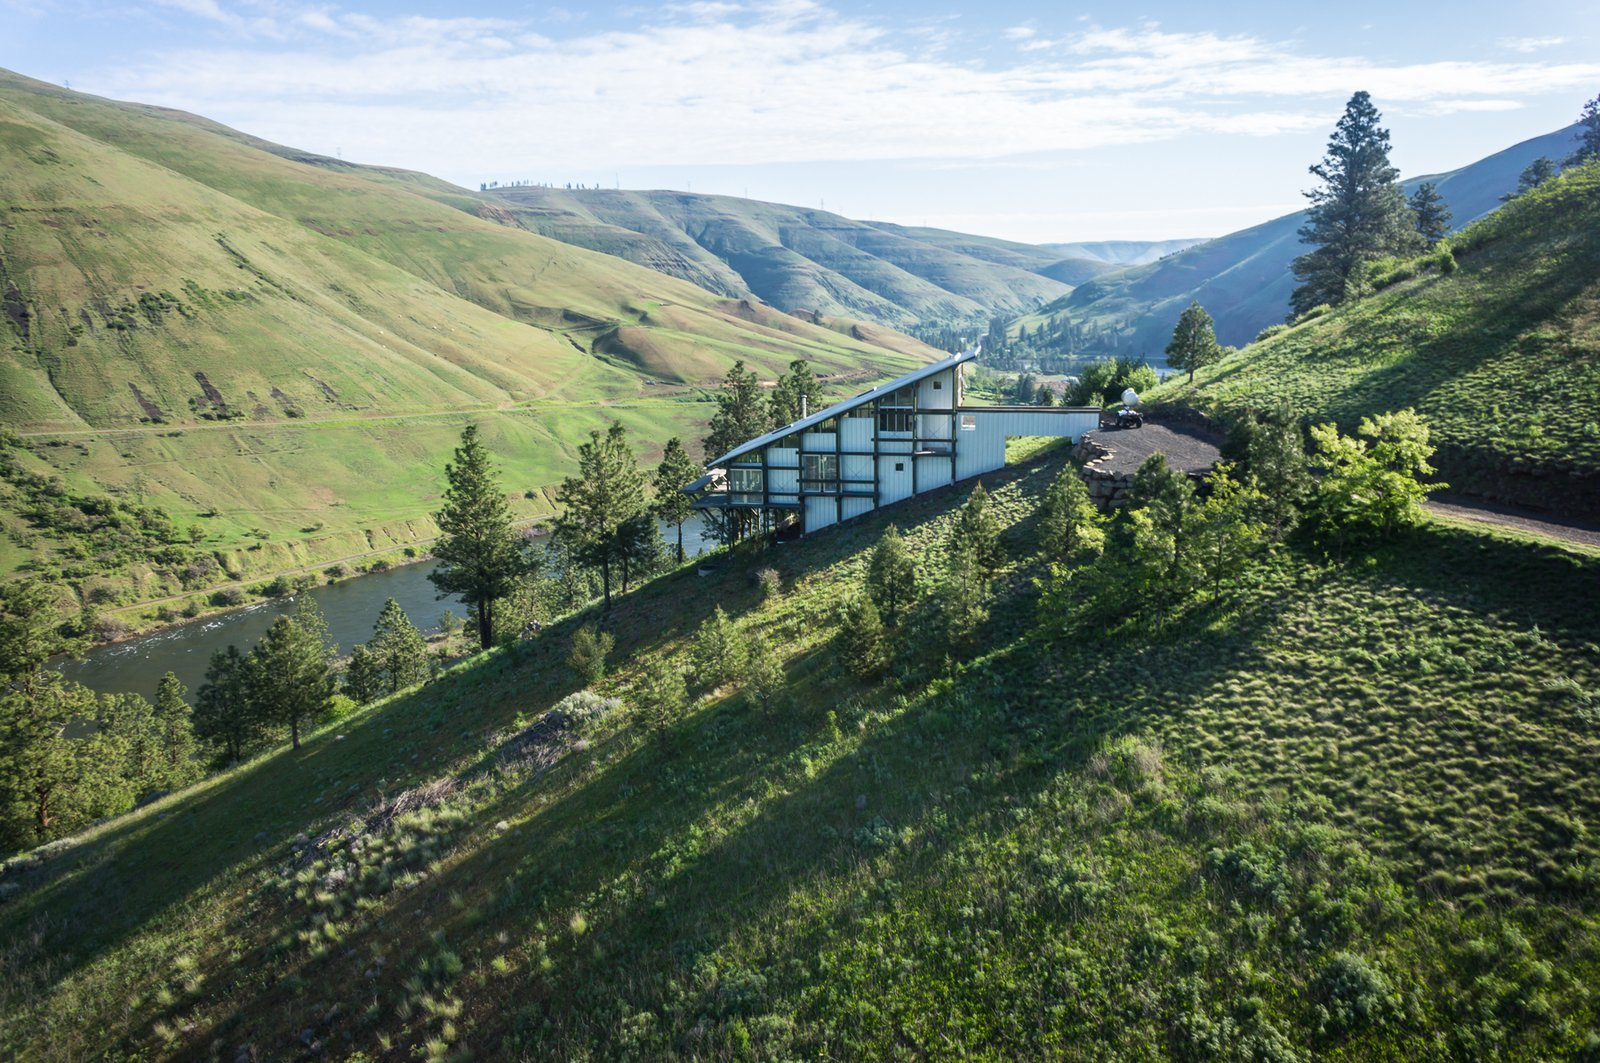 Outdoor, Trees, Slope, Woodland, and Grass The western side of the house has a scaffold-like structure for window cleaning.  Best Outdoor Slope Trees Photos from Own This Award-Winning Riverside Home in Idaho For $650K